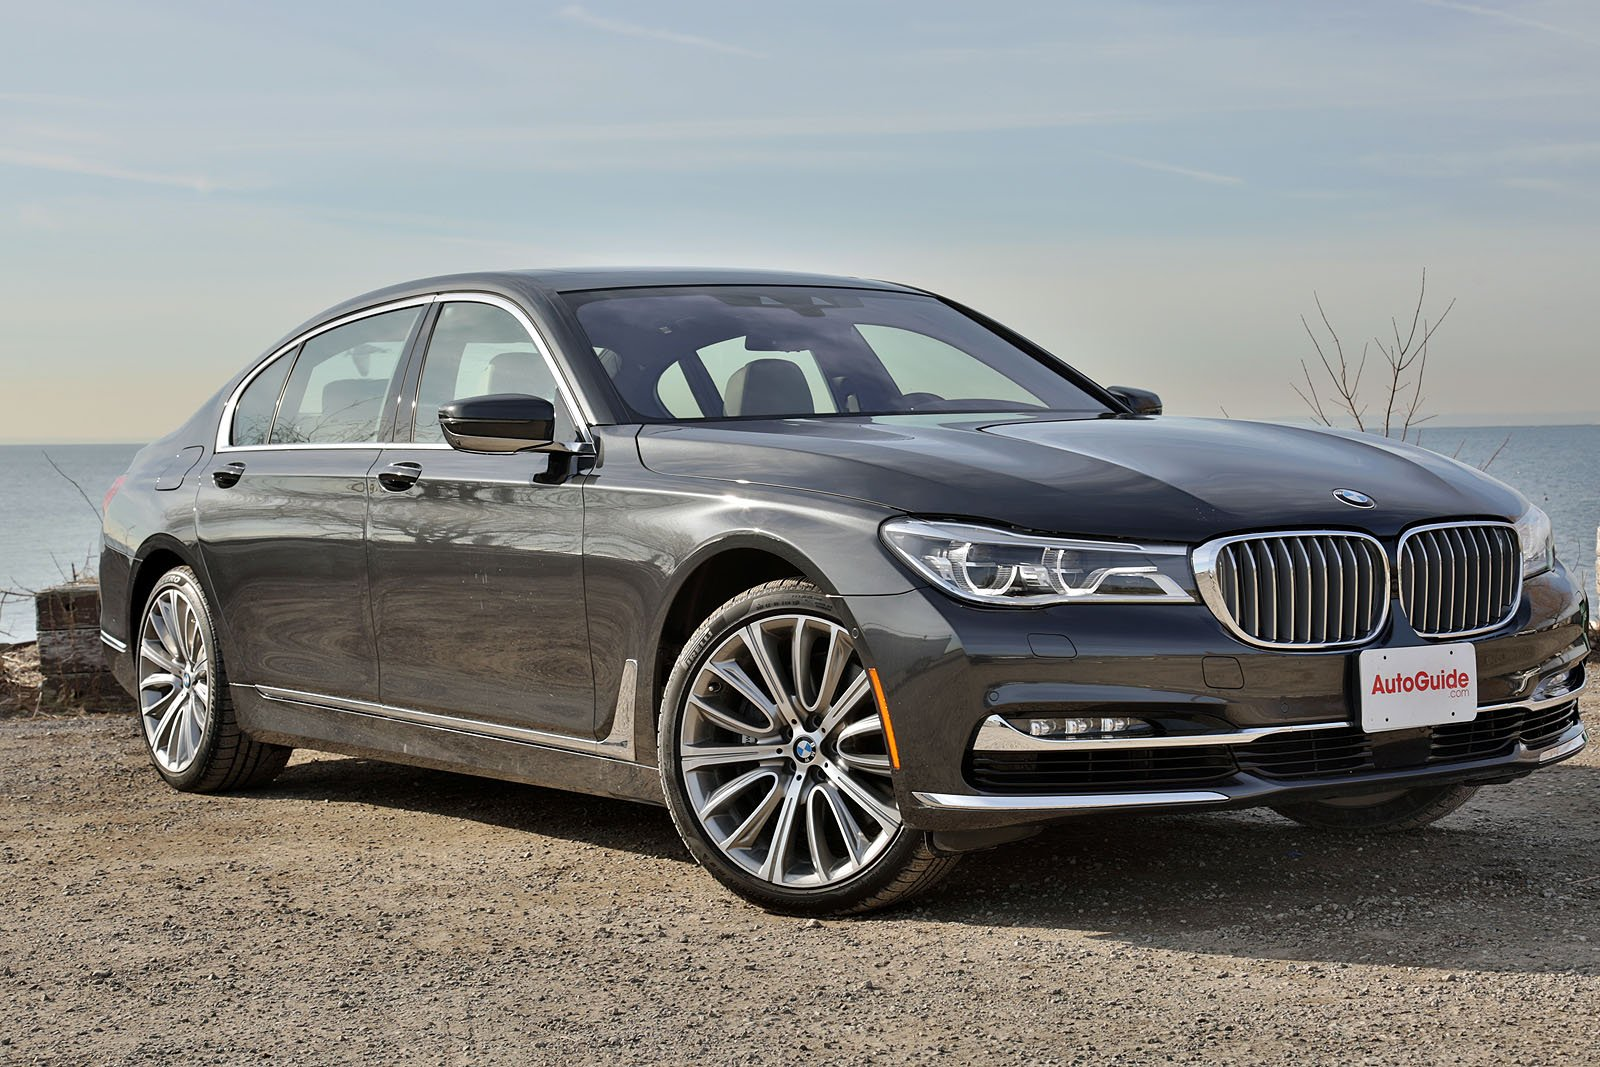 2016 Bmw 750li Xdrive Review 08